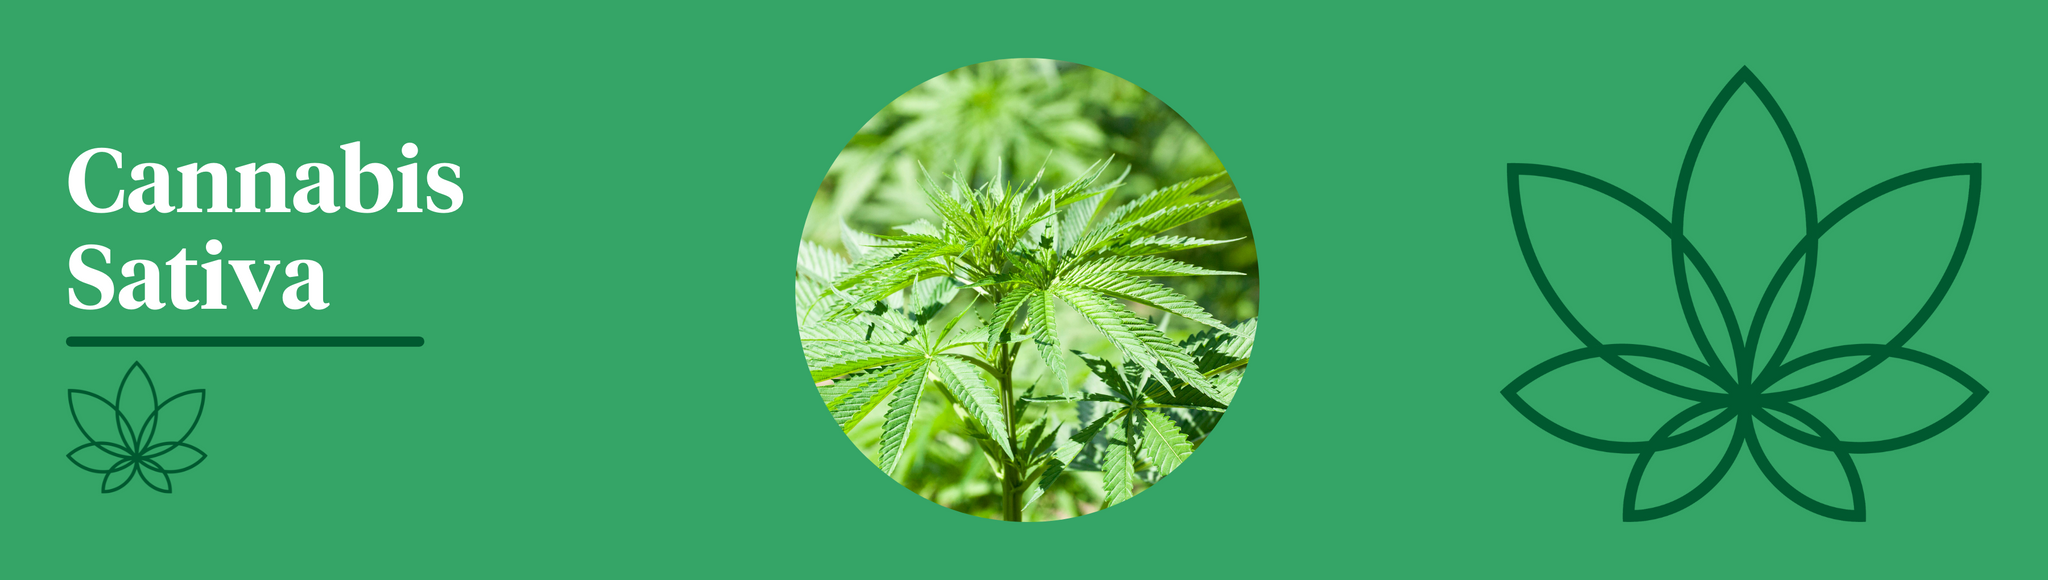 A green background with the Supreme CBD logo to the right of the image with a close up image of the Cannabis Sativa plant in the centre showing the difference between indica and sativa.